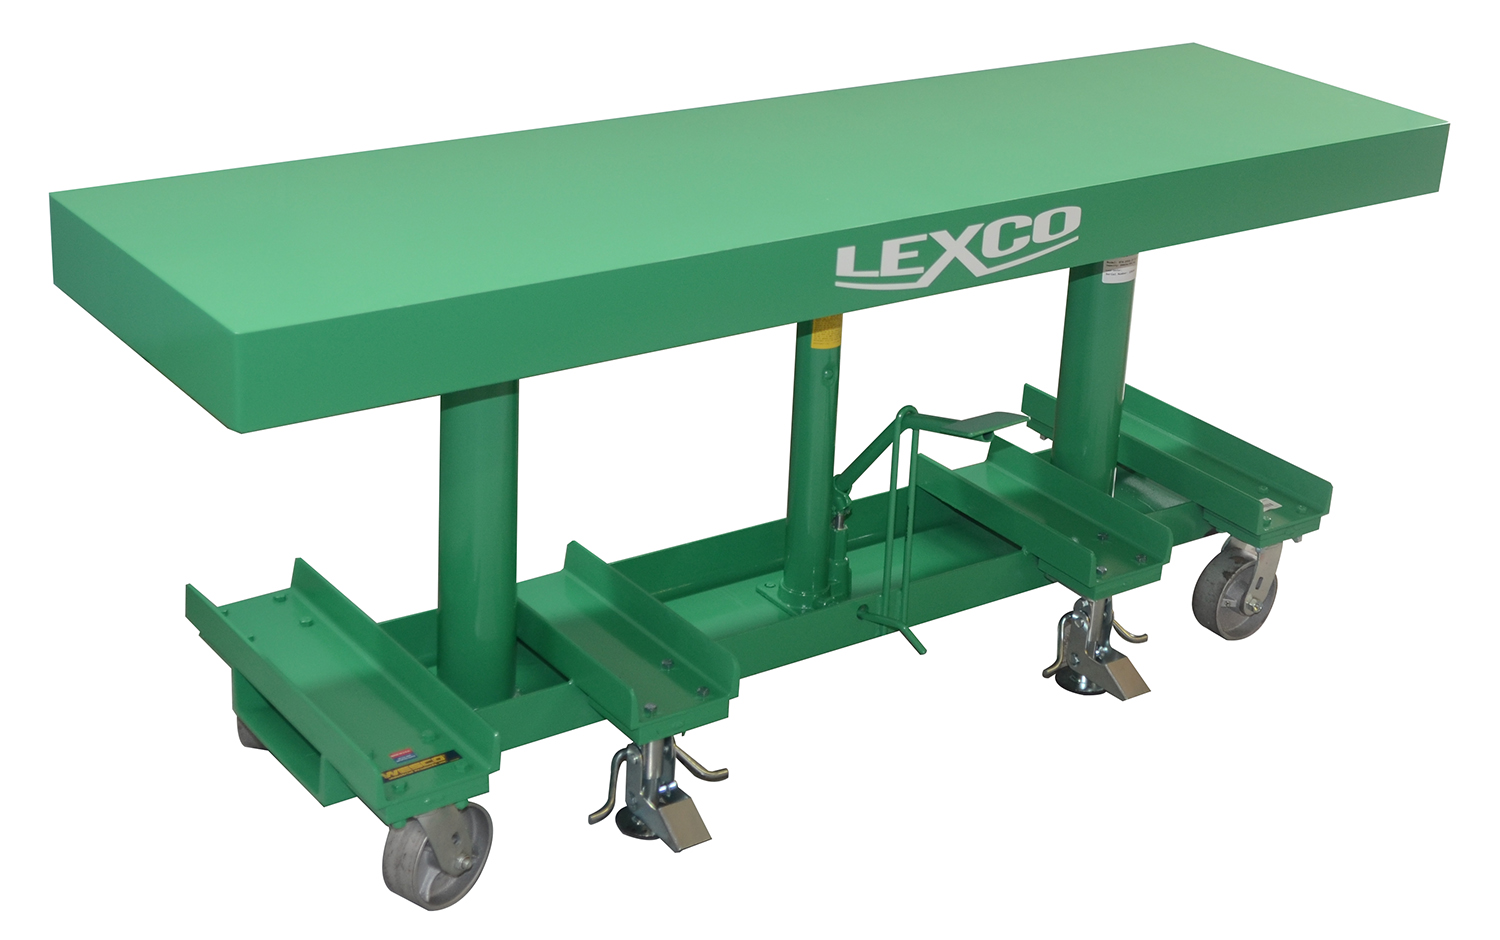 Lexco 174 Long Deck Hydraulic Foot Operated Lift Table On